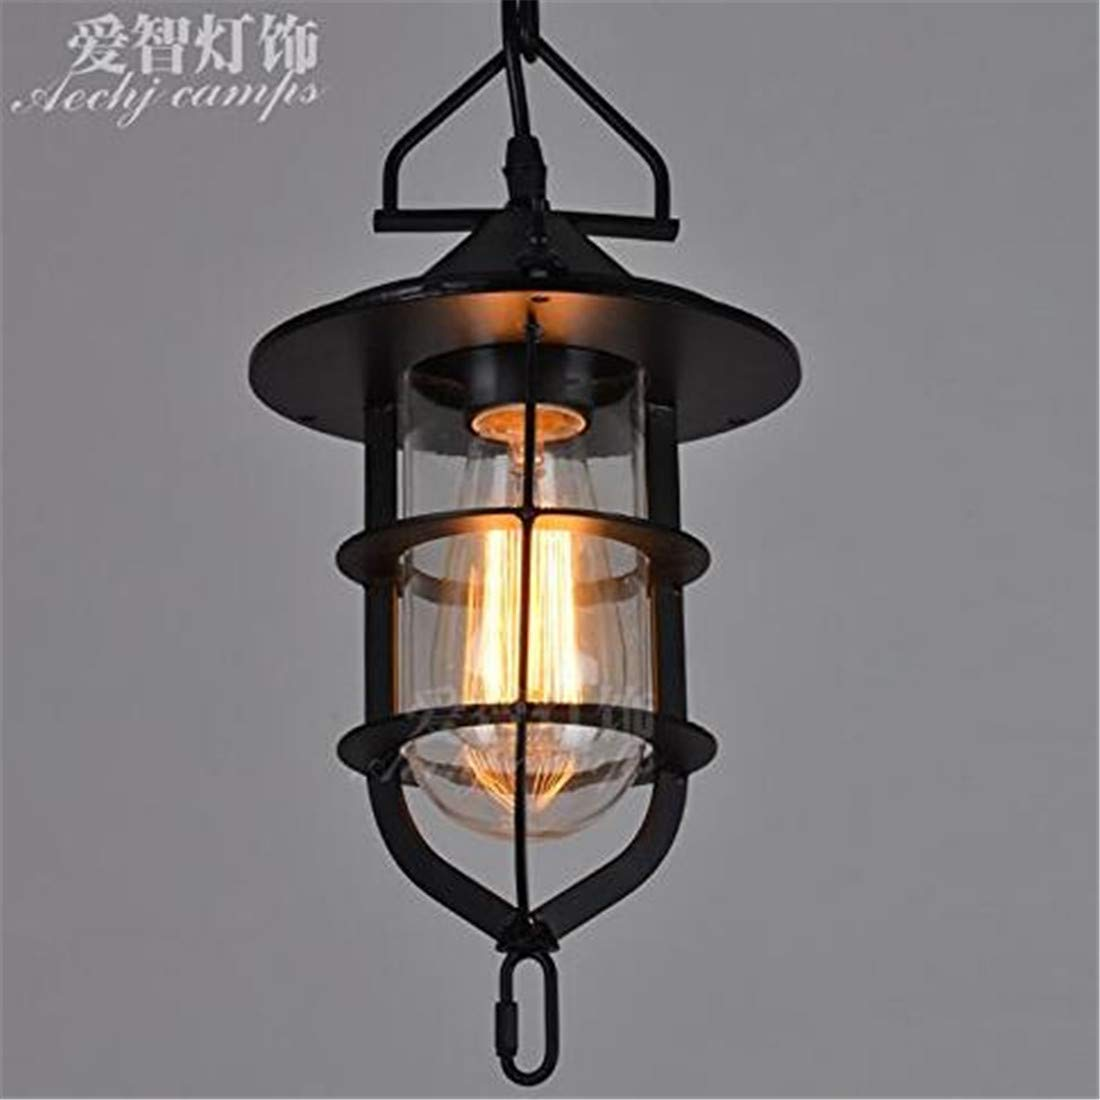 Vintage Chandelierwall Light Sconce E26 27 Base Antique Glass Iron Guest Room Wall Lights Loft Industrial Dock Chandeliers Cafe Bar Chandelier, schwarz